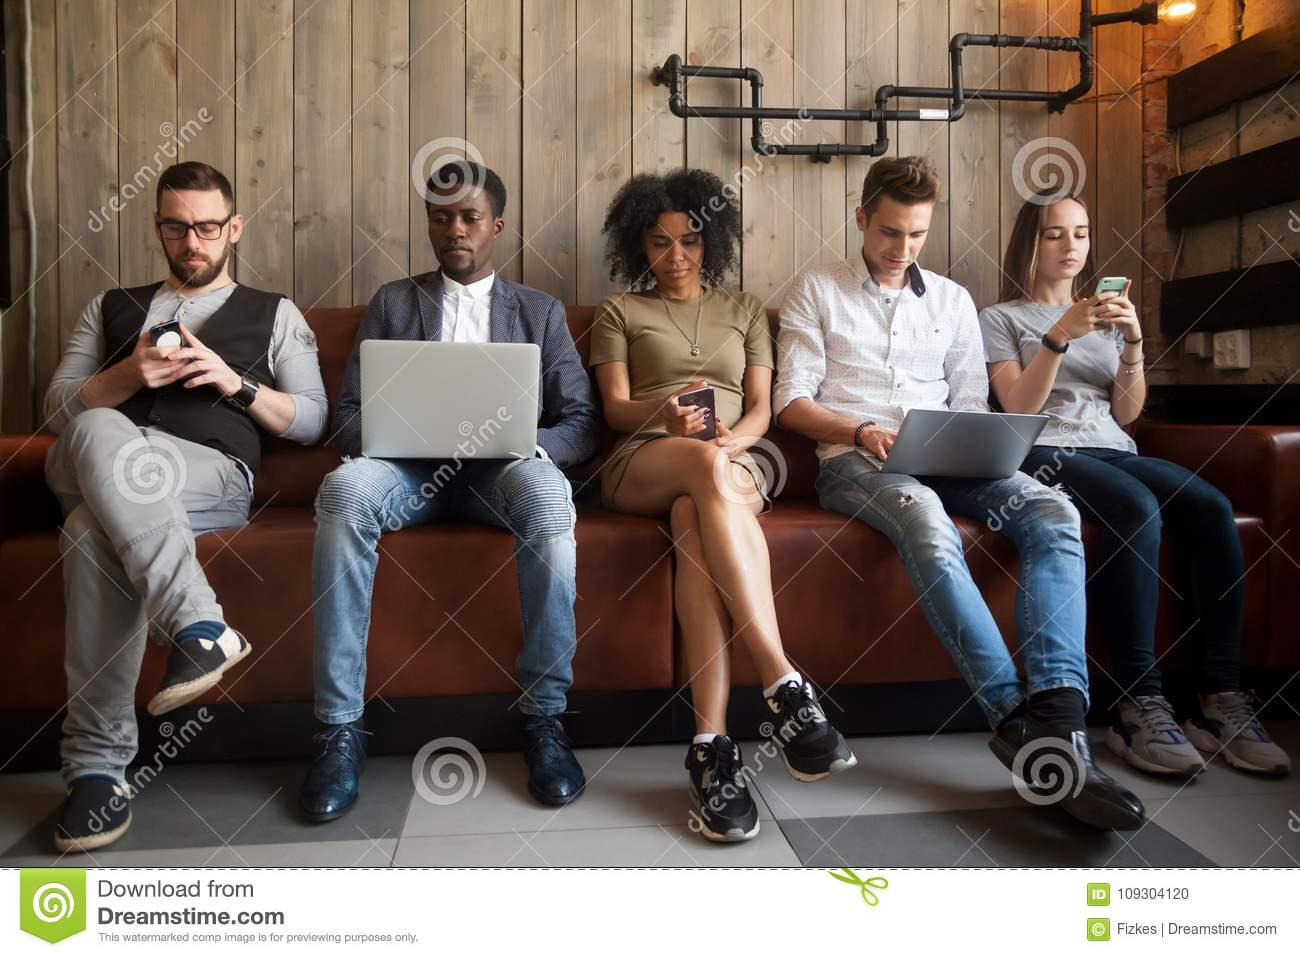 Diverse young people sitting in row obsessed with devices online